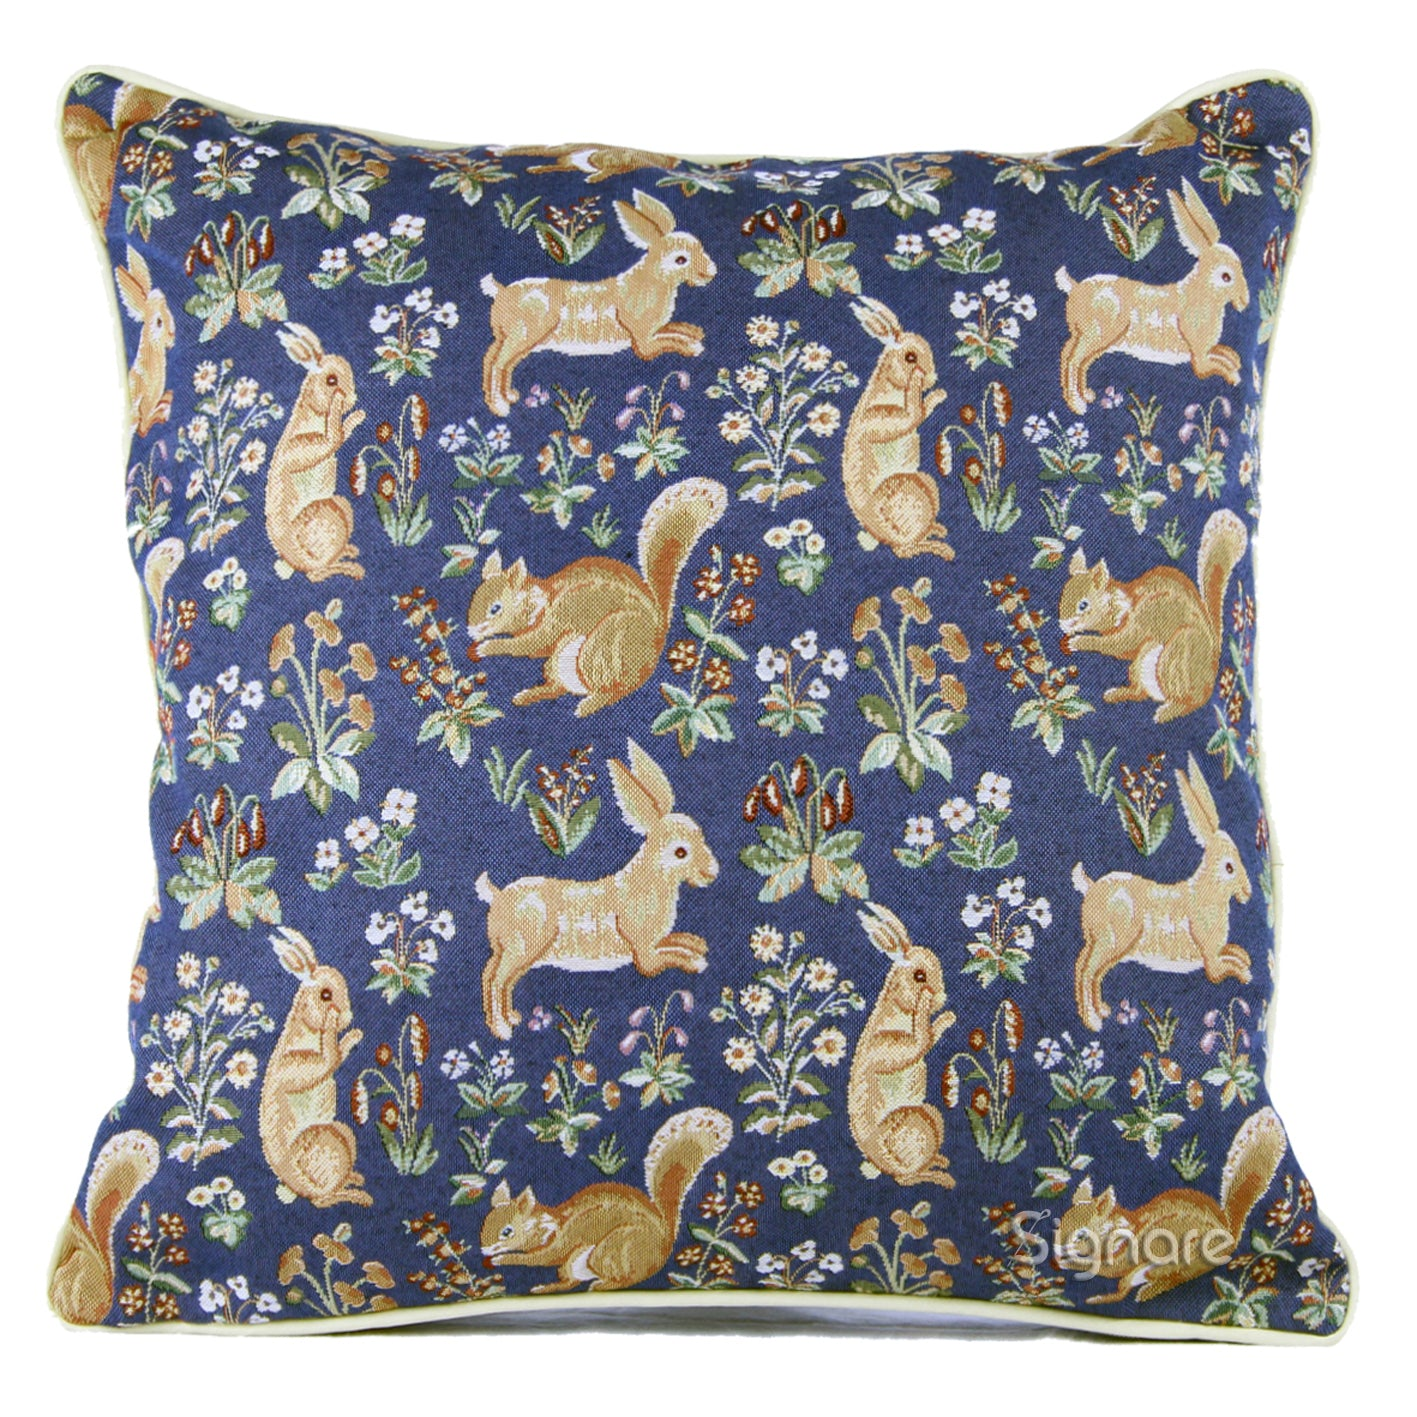 CCOV-FORE | FOREST BLUE PILLOWCASE/CUSHION COVER | DECORATIVE DESIGN FASHION HOME PILLOW 18X18 INCH - www.signareusa.com